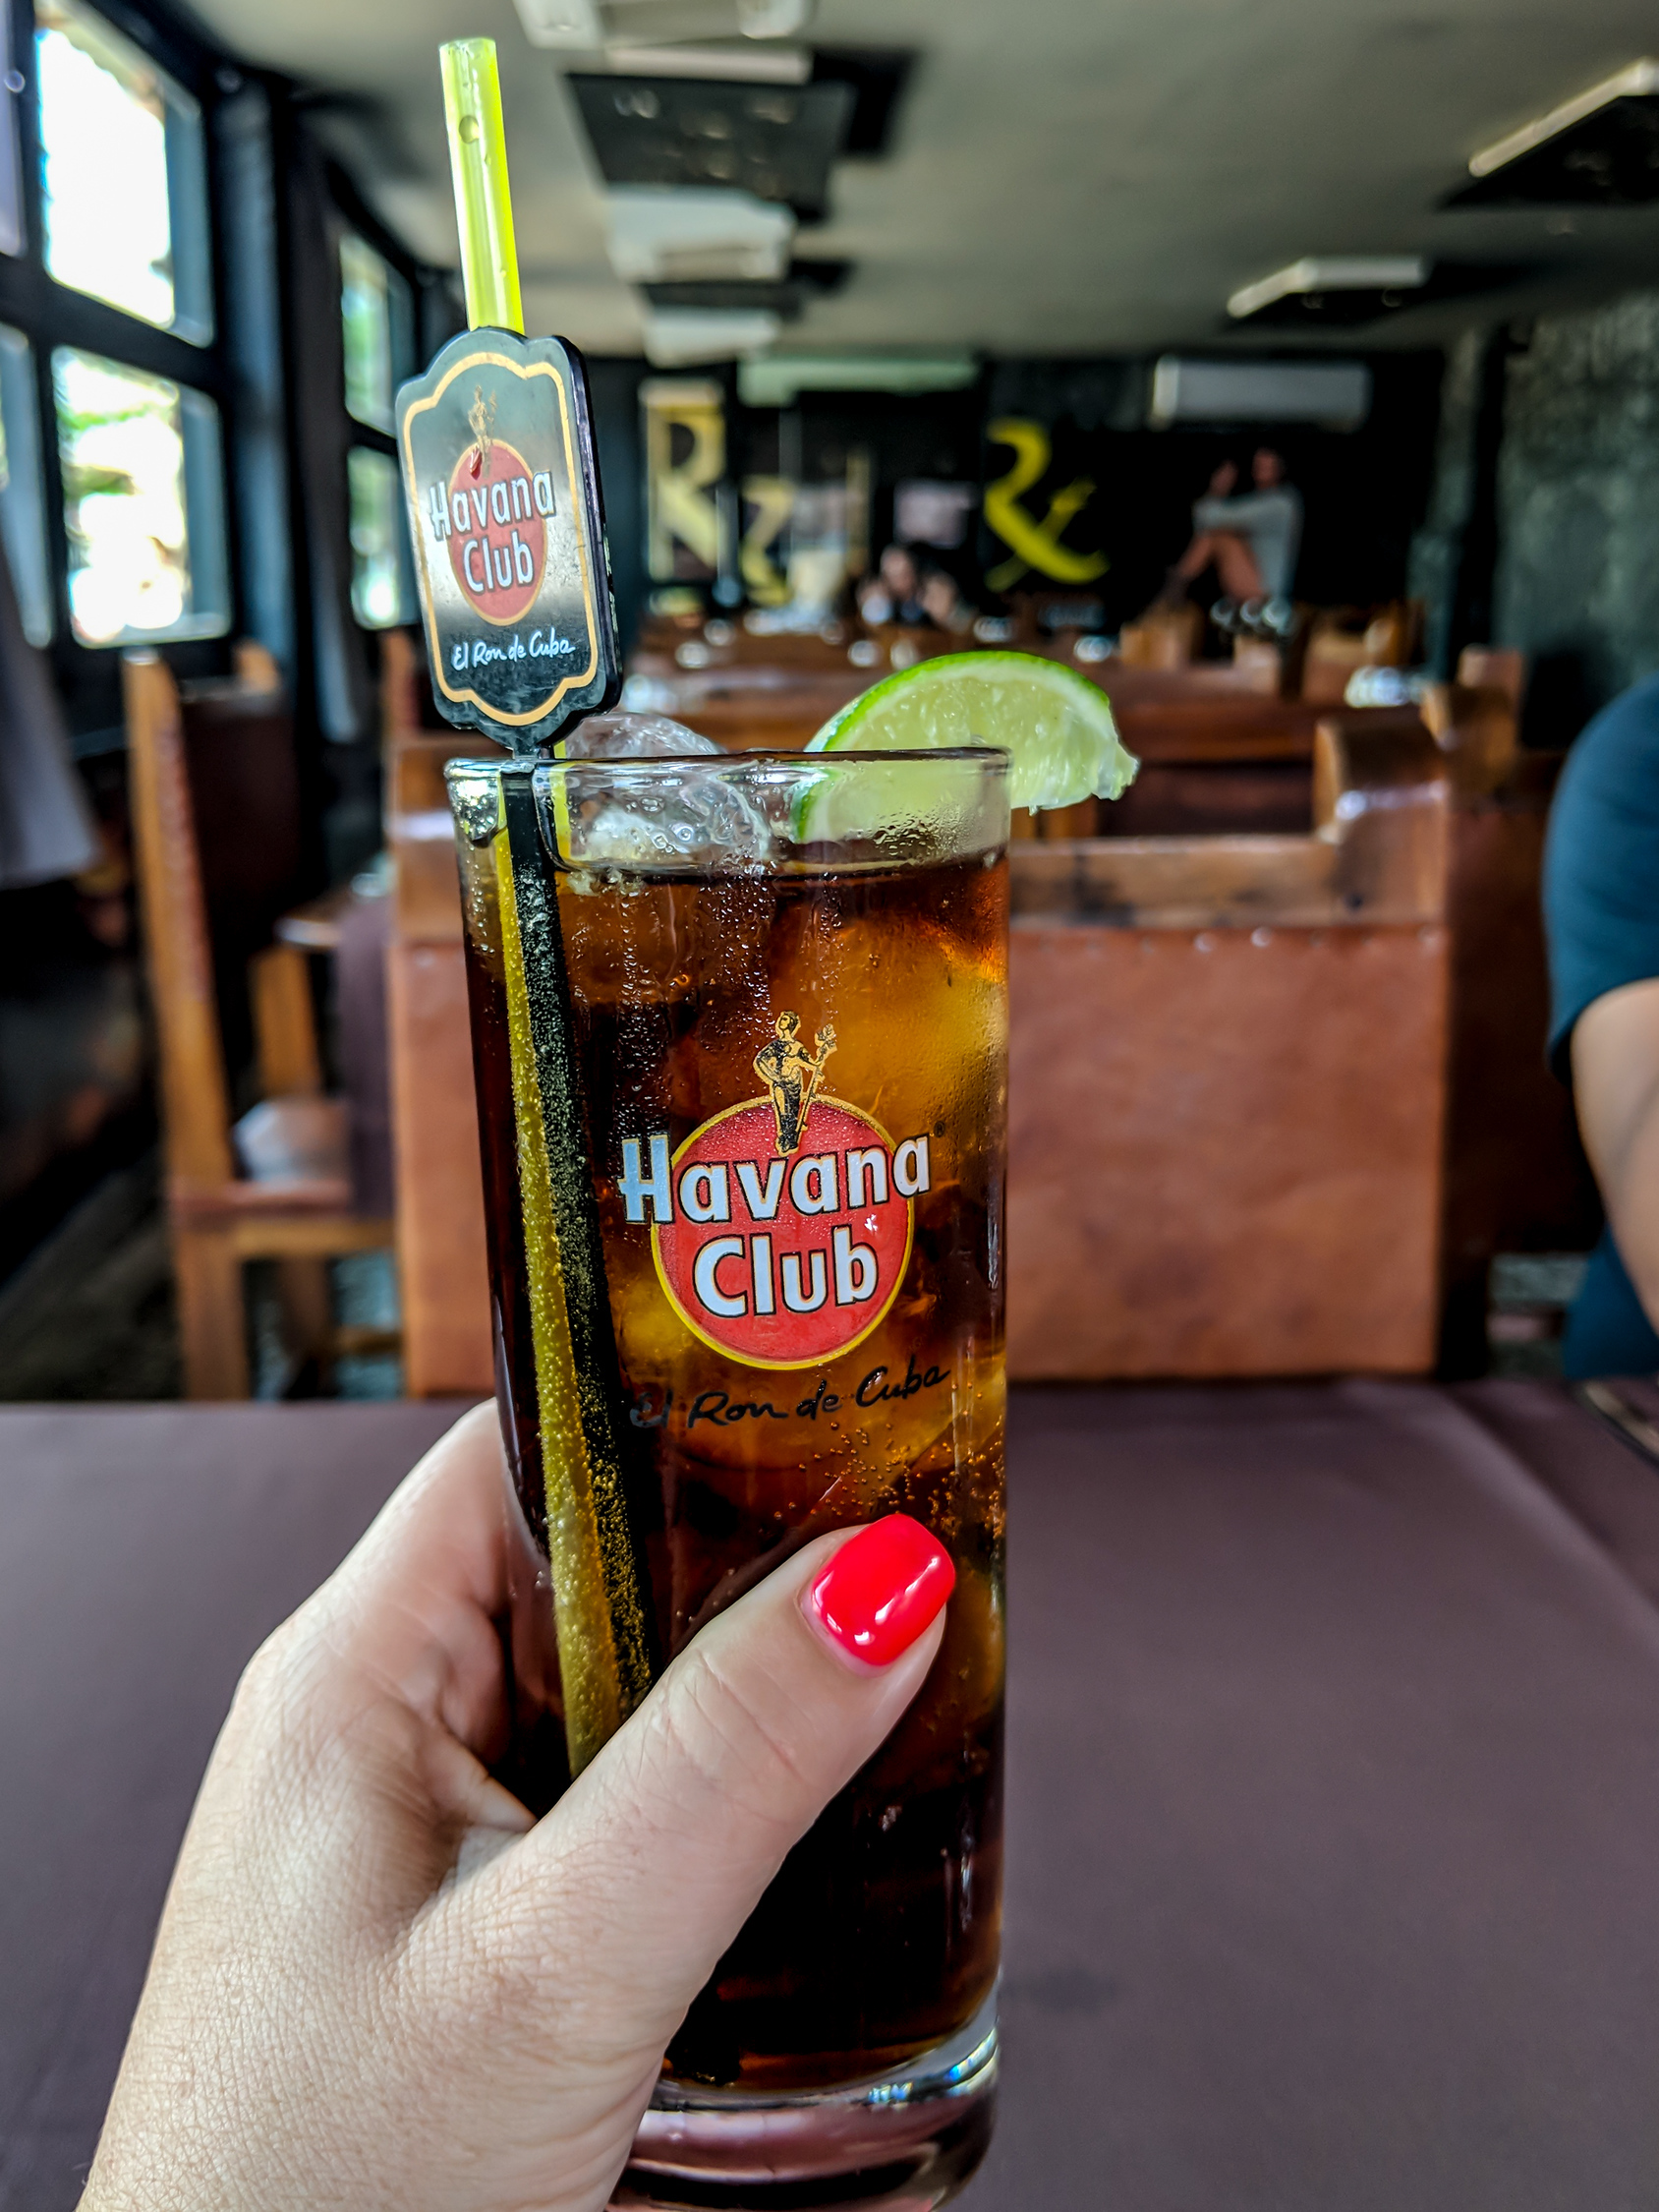 Cuban Cuba libre cocktail in a Havana Club tall glass.